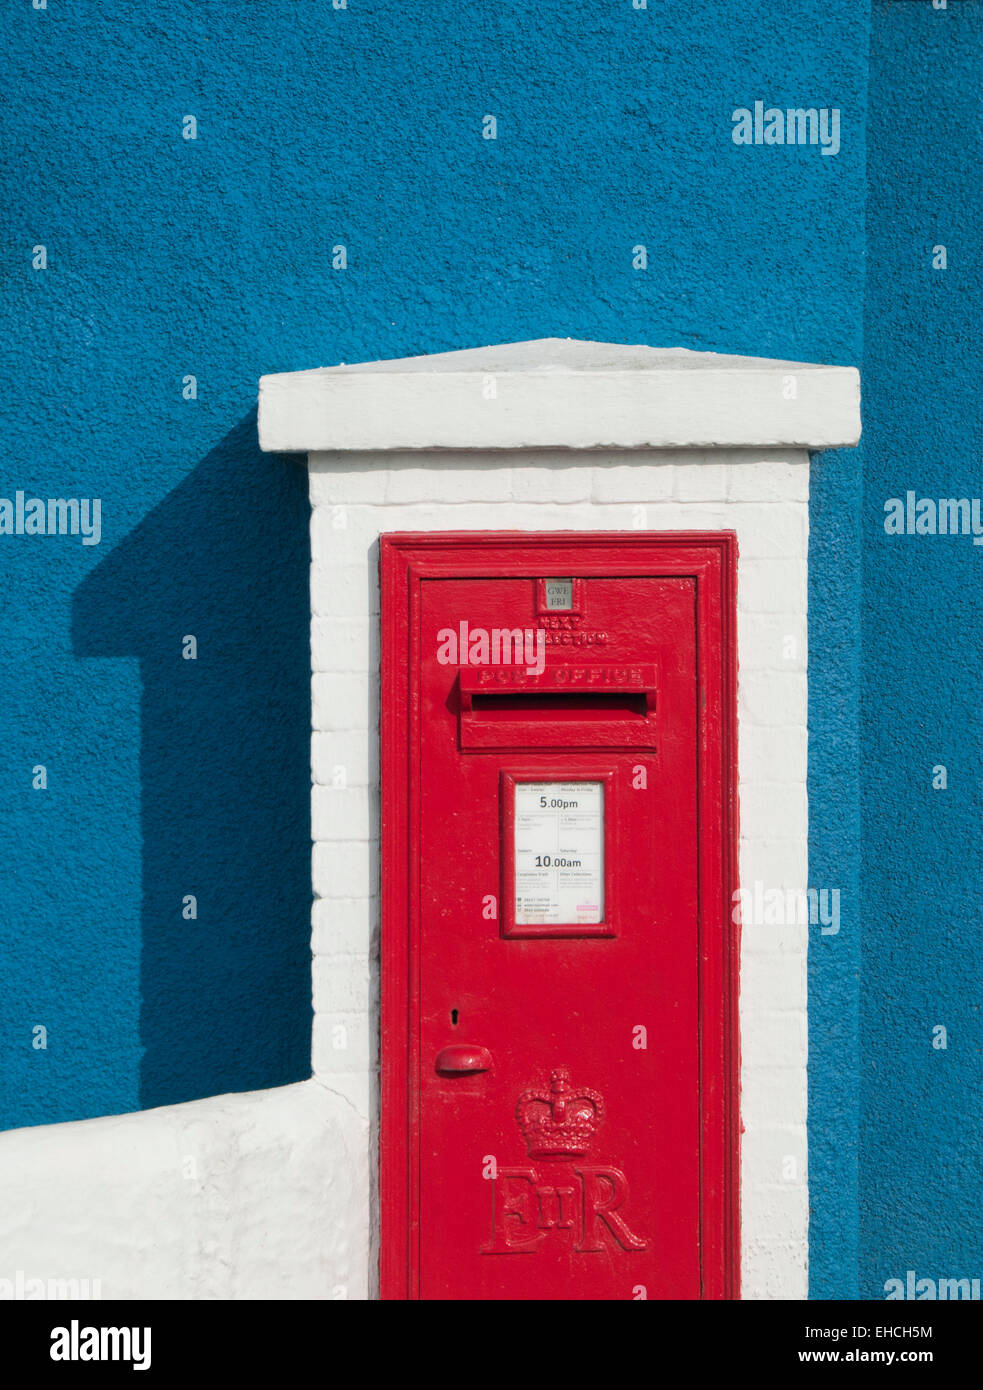 Bright Red Postbox against a Blue Wall, Moelfre, Anglesey, North Wales, UK - Stock Image